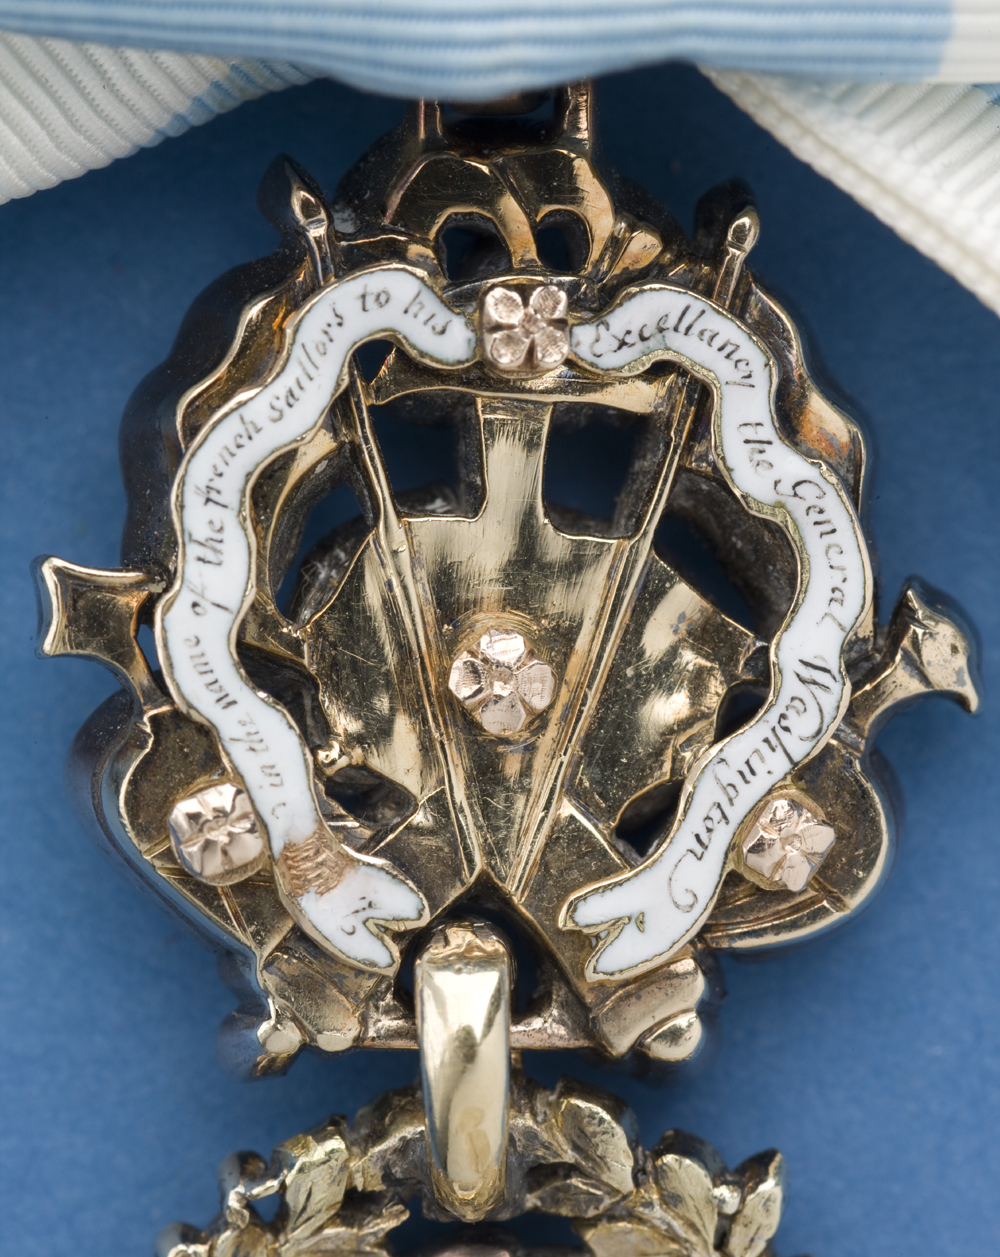 Back side of the gold trophy of a medal with an inscription on a white enamel ribbon